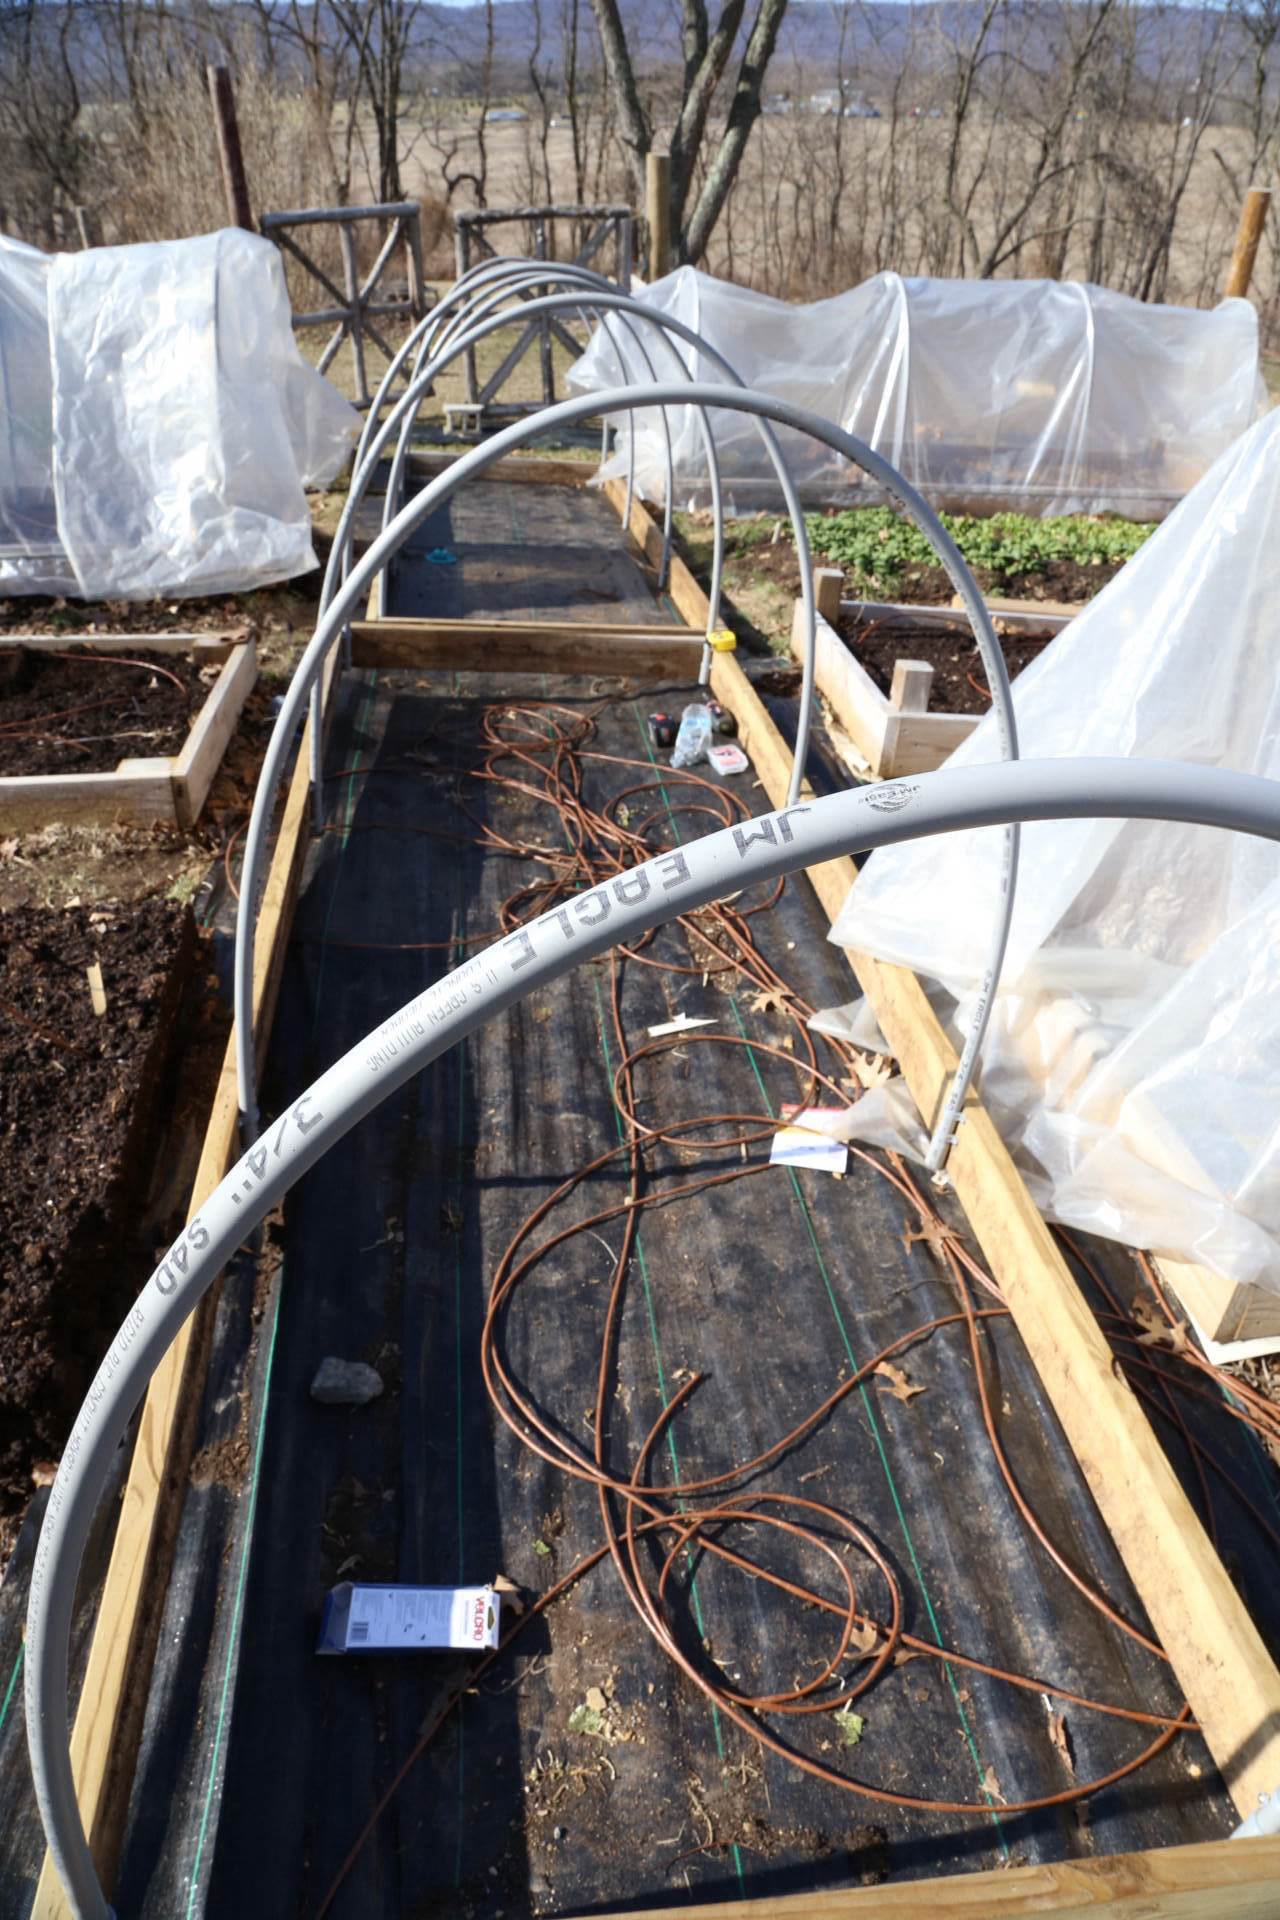 New cold frames without their covers